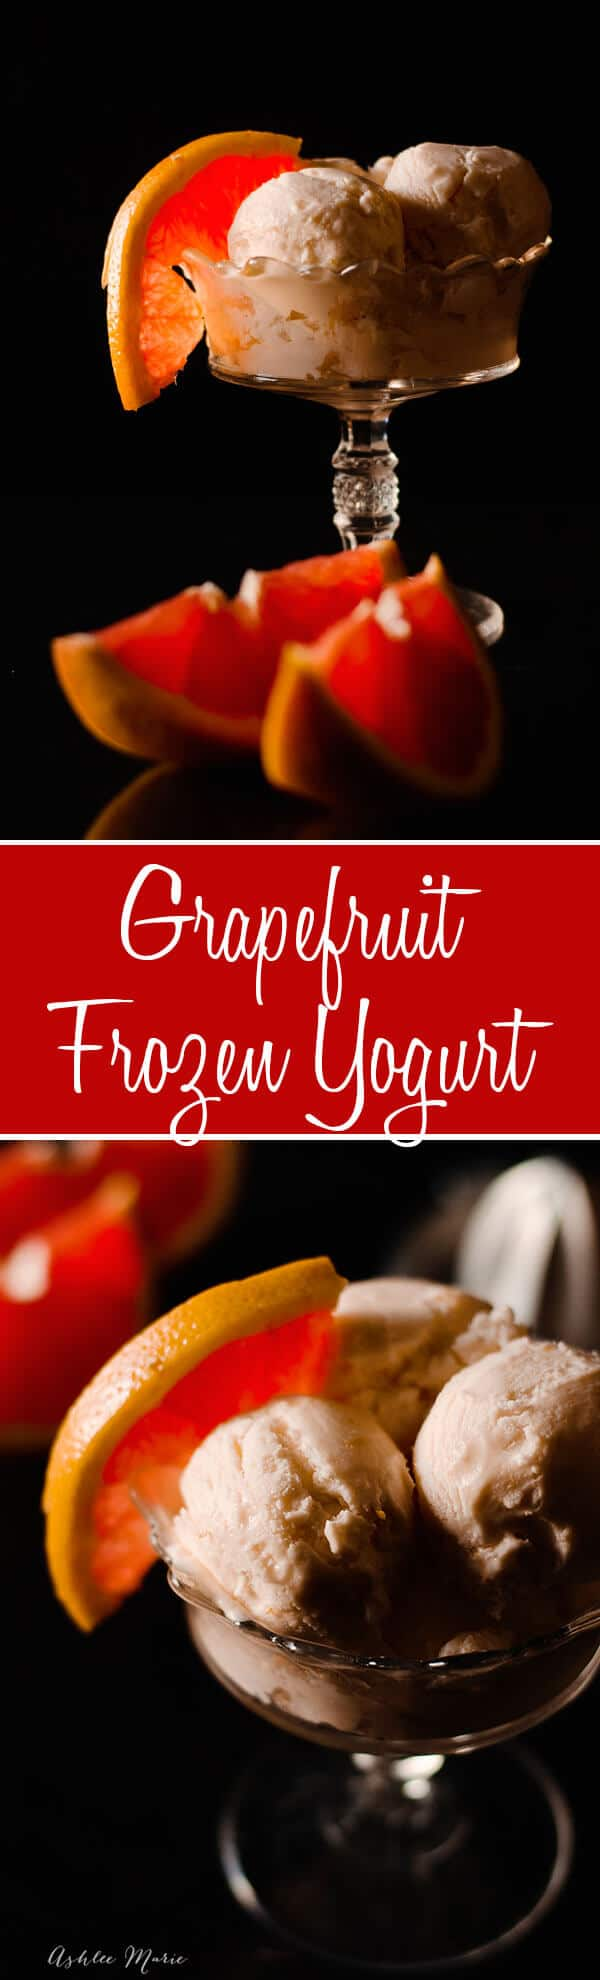 this creamy grapefruit frozen yogurt recipe is super easy to make and perfect for spring! #frozenyogurt #grapefruit #springrecipe